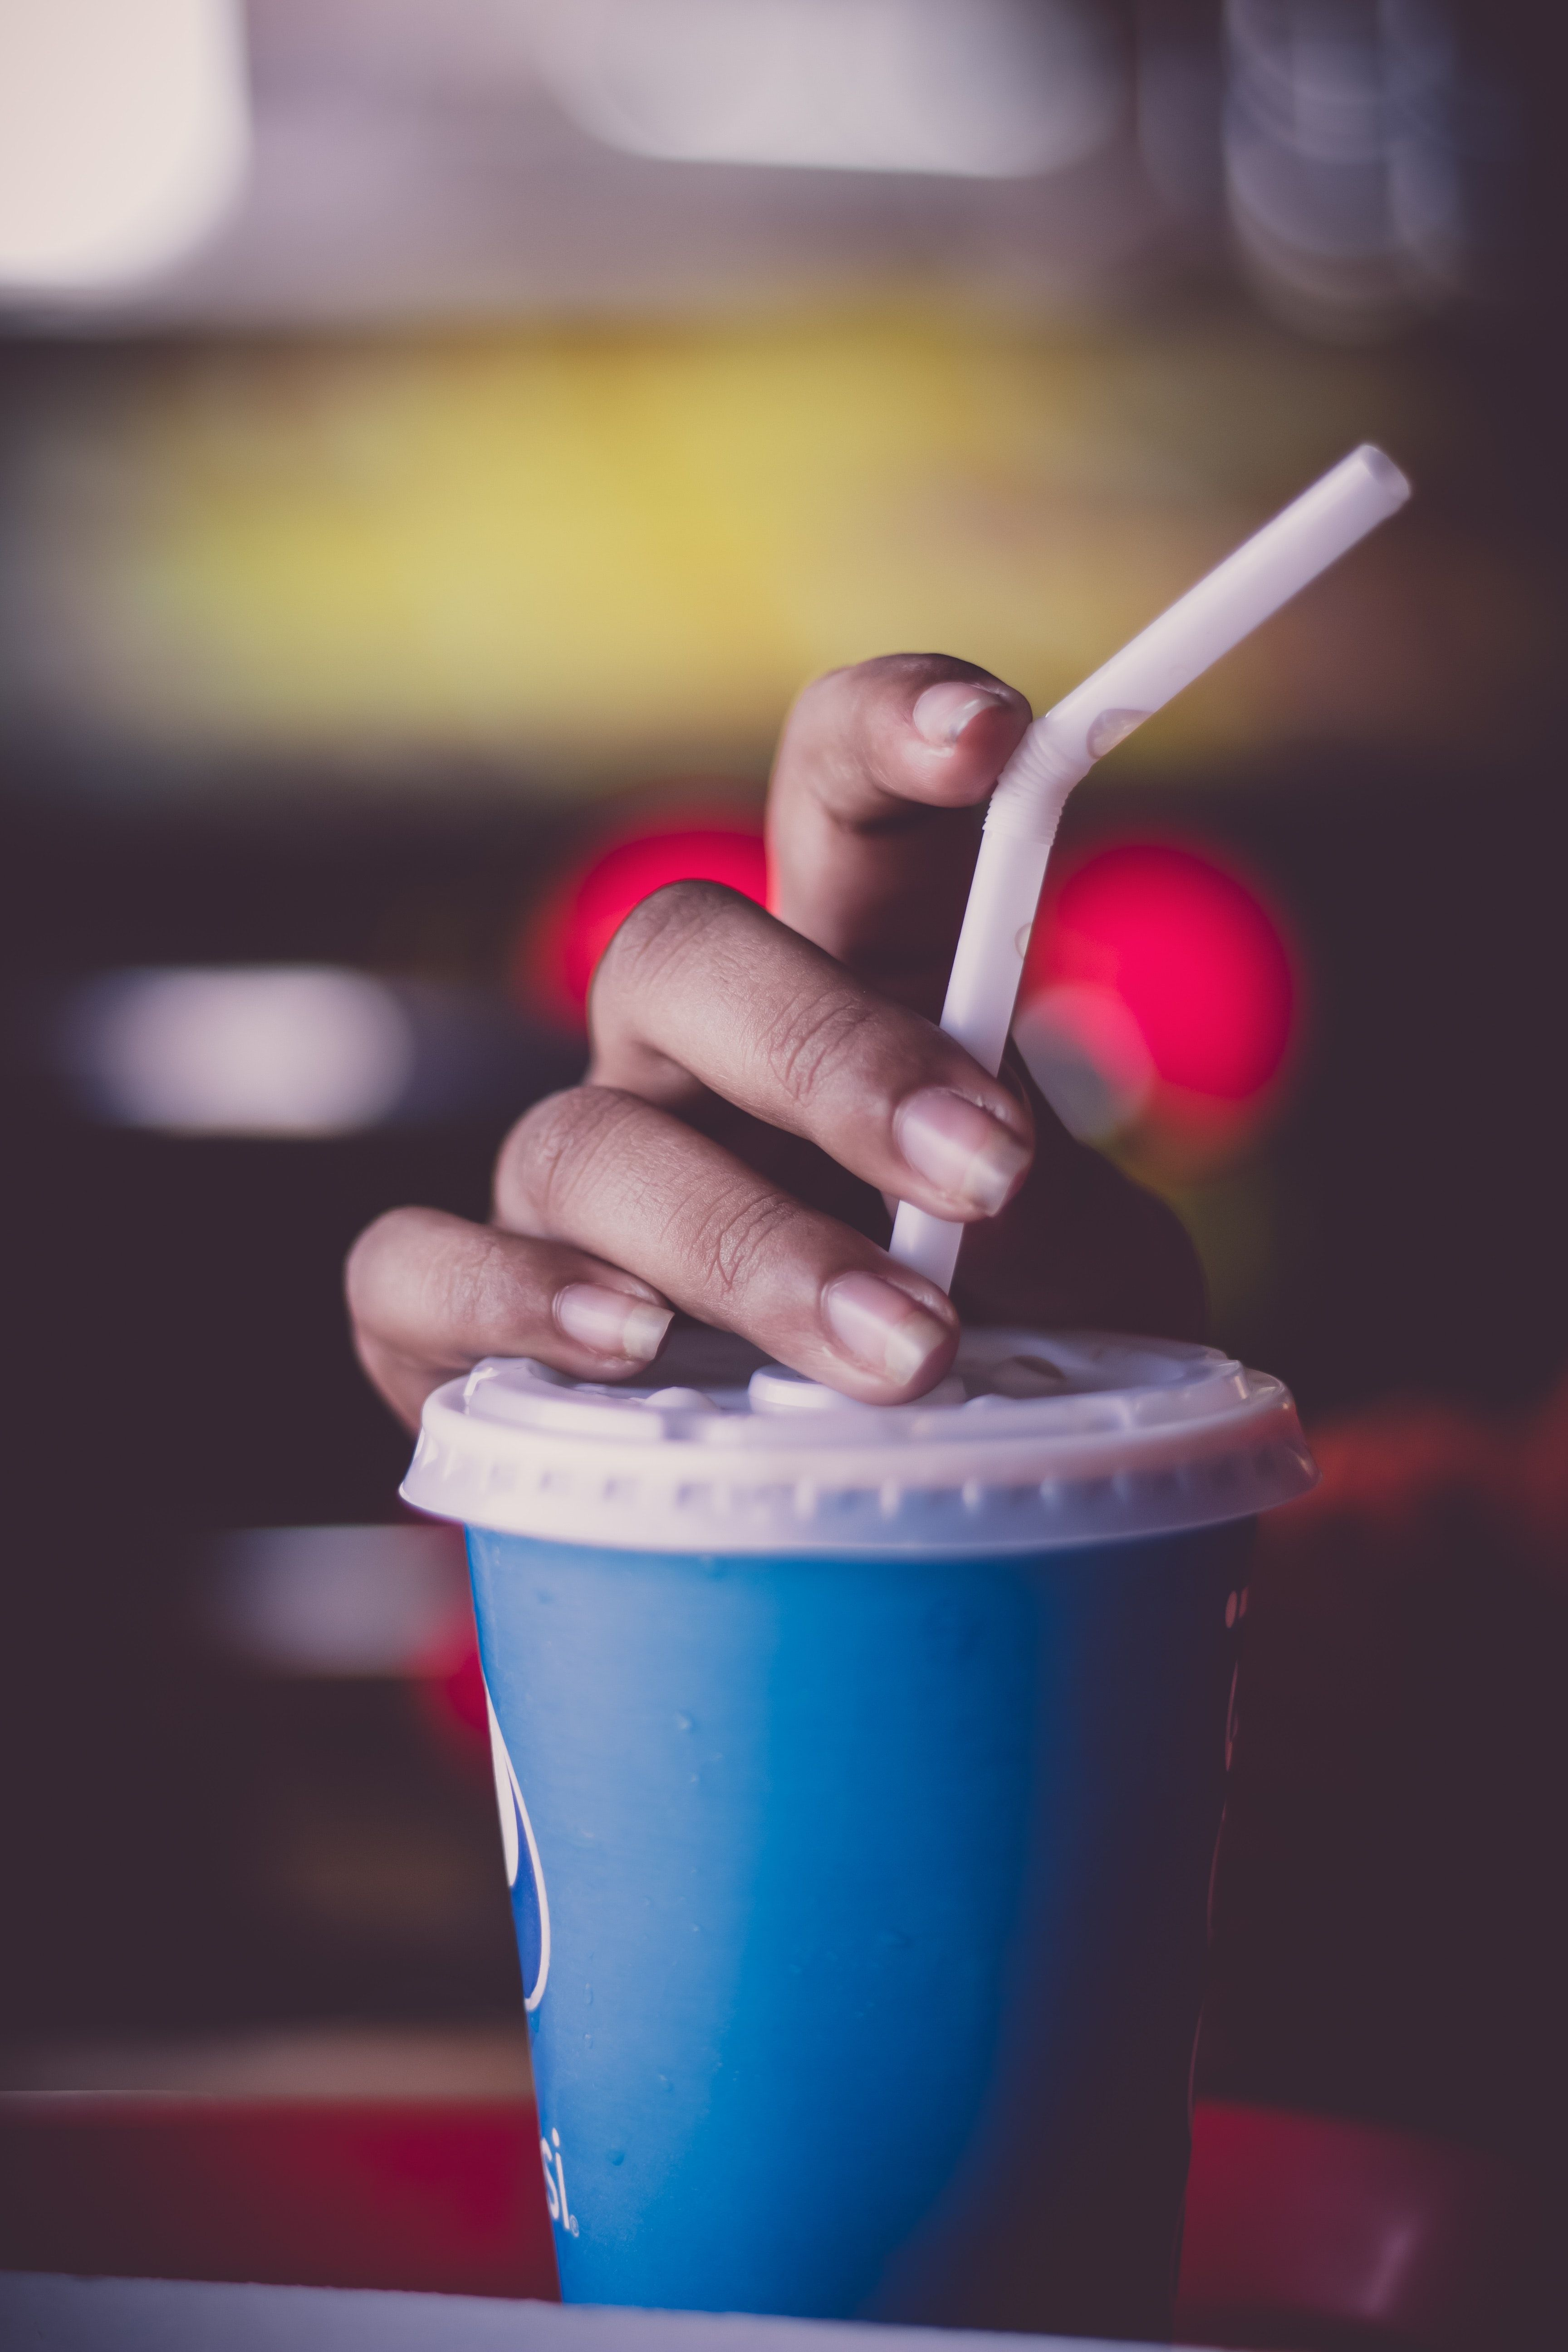 Person Holding Cup With Straw, beverage breakfast